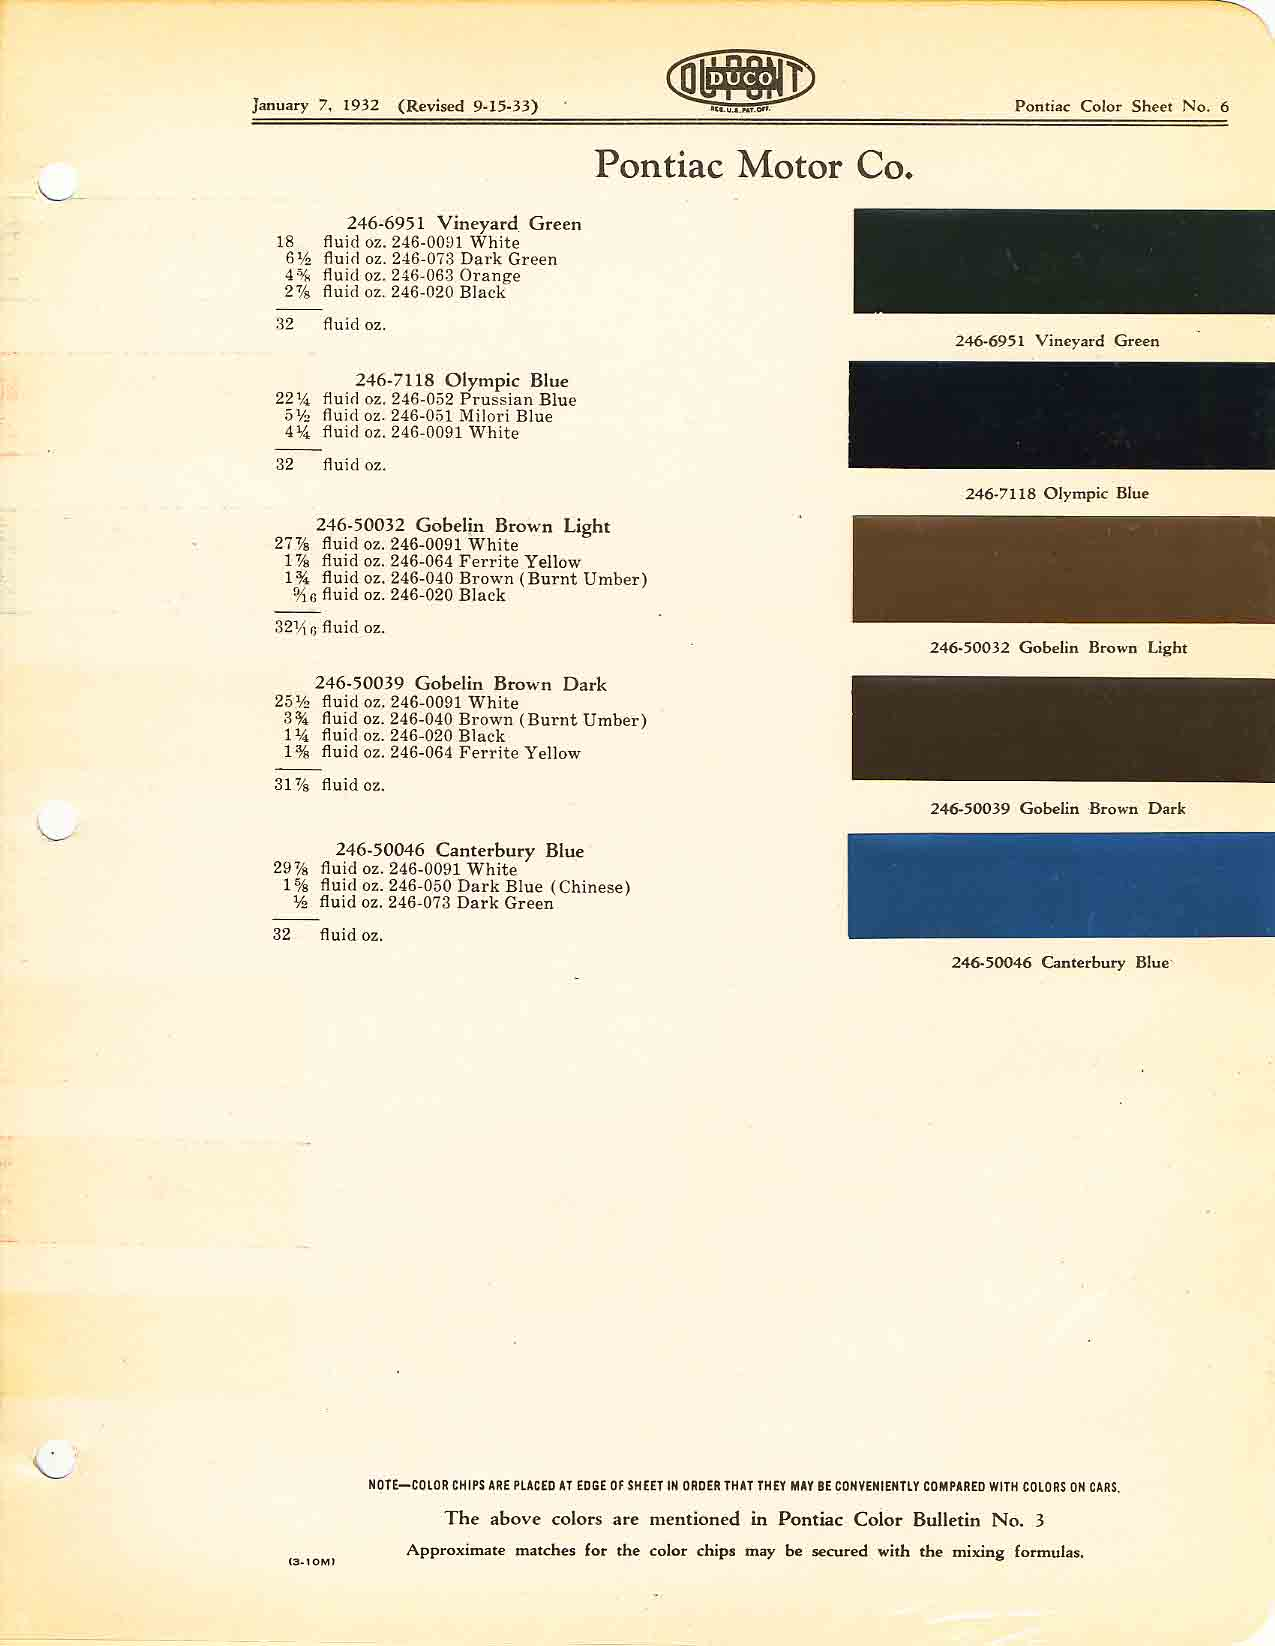 Color Code and Paint Color Chart for Pontiac for 1932